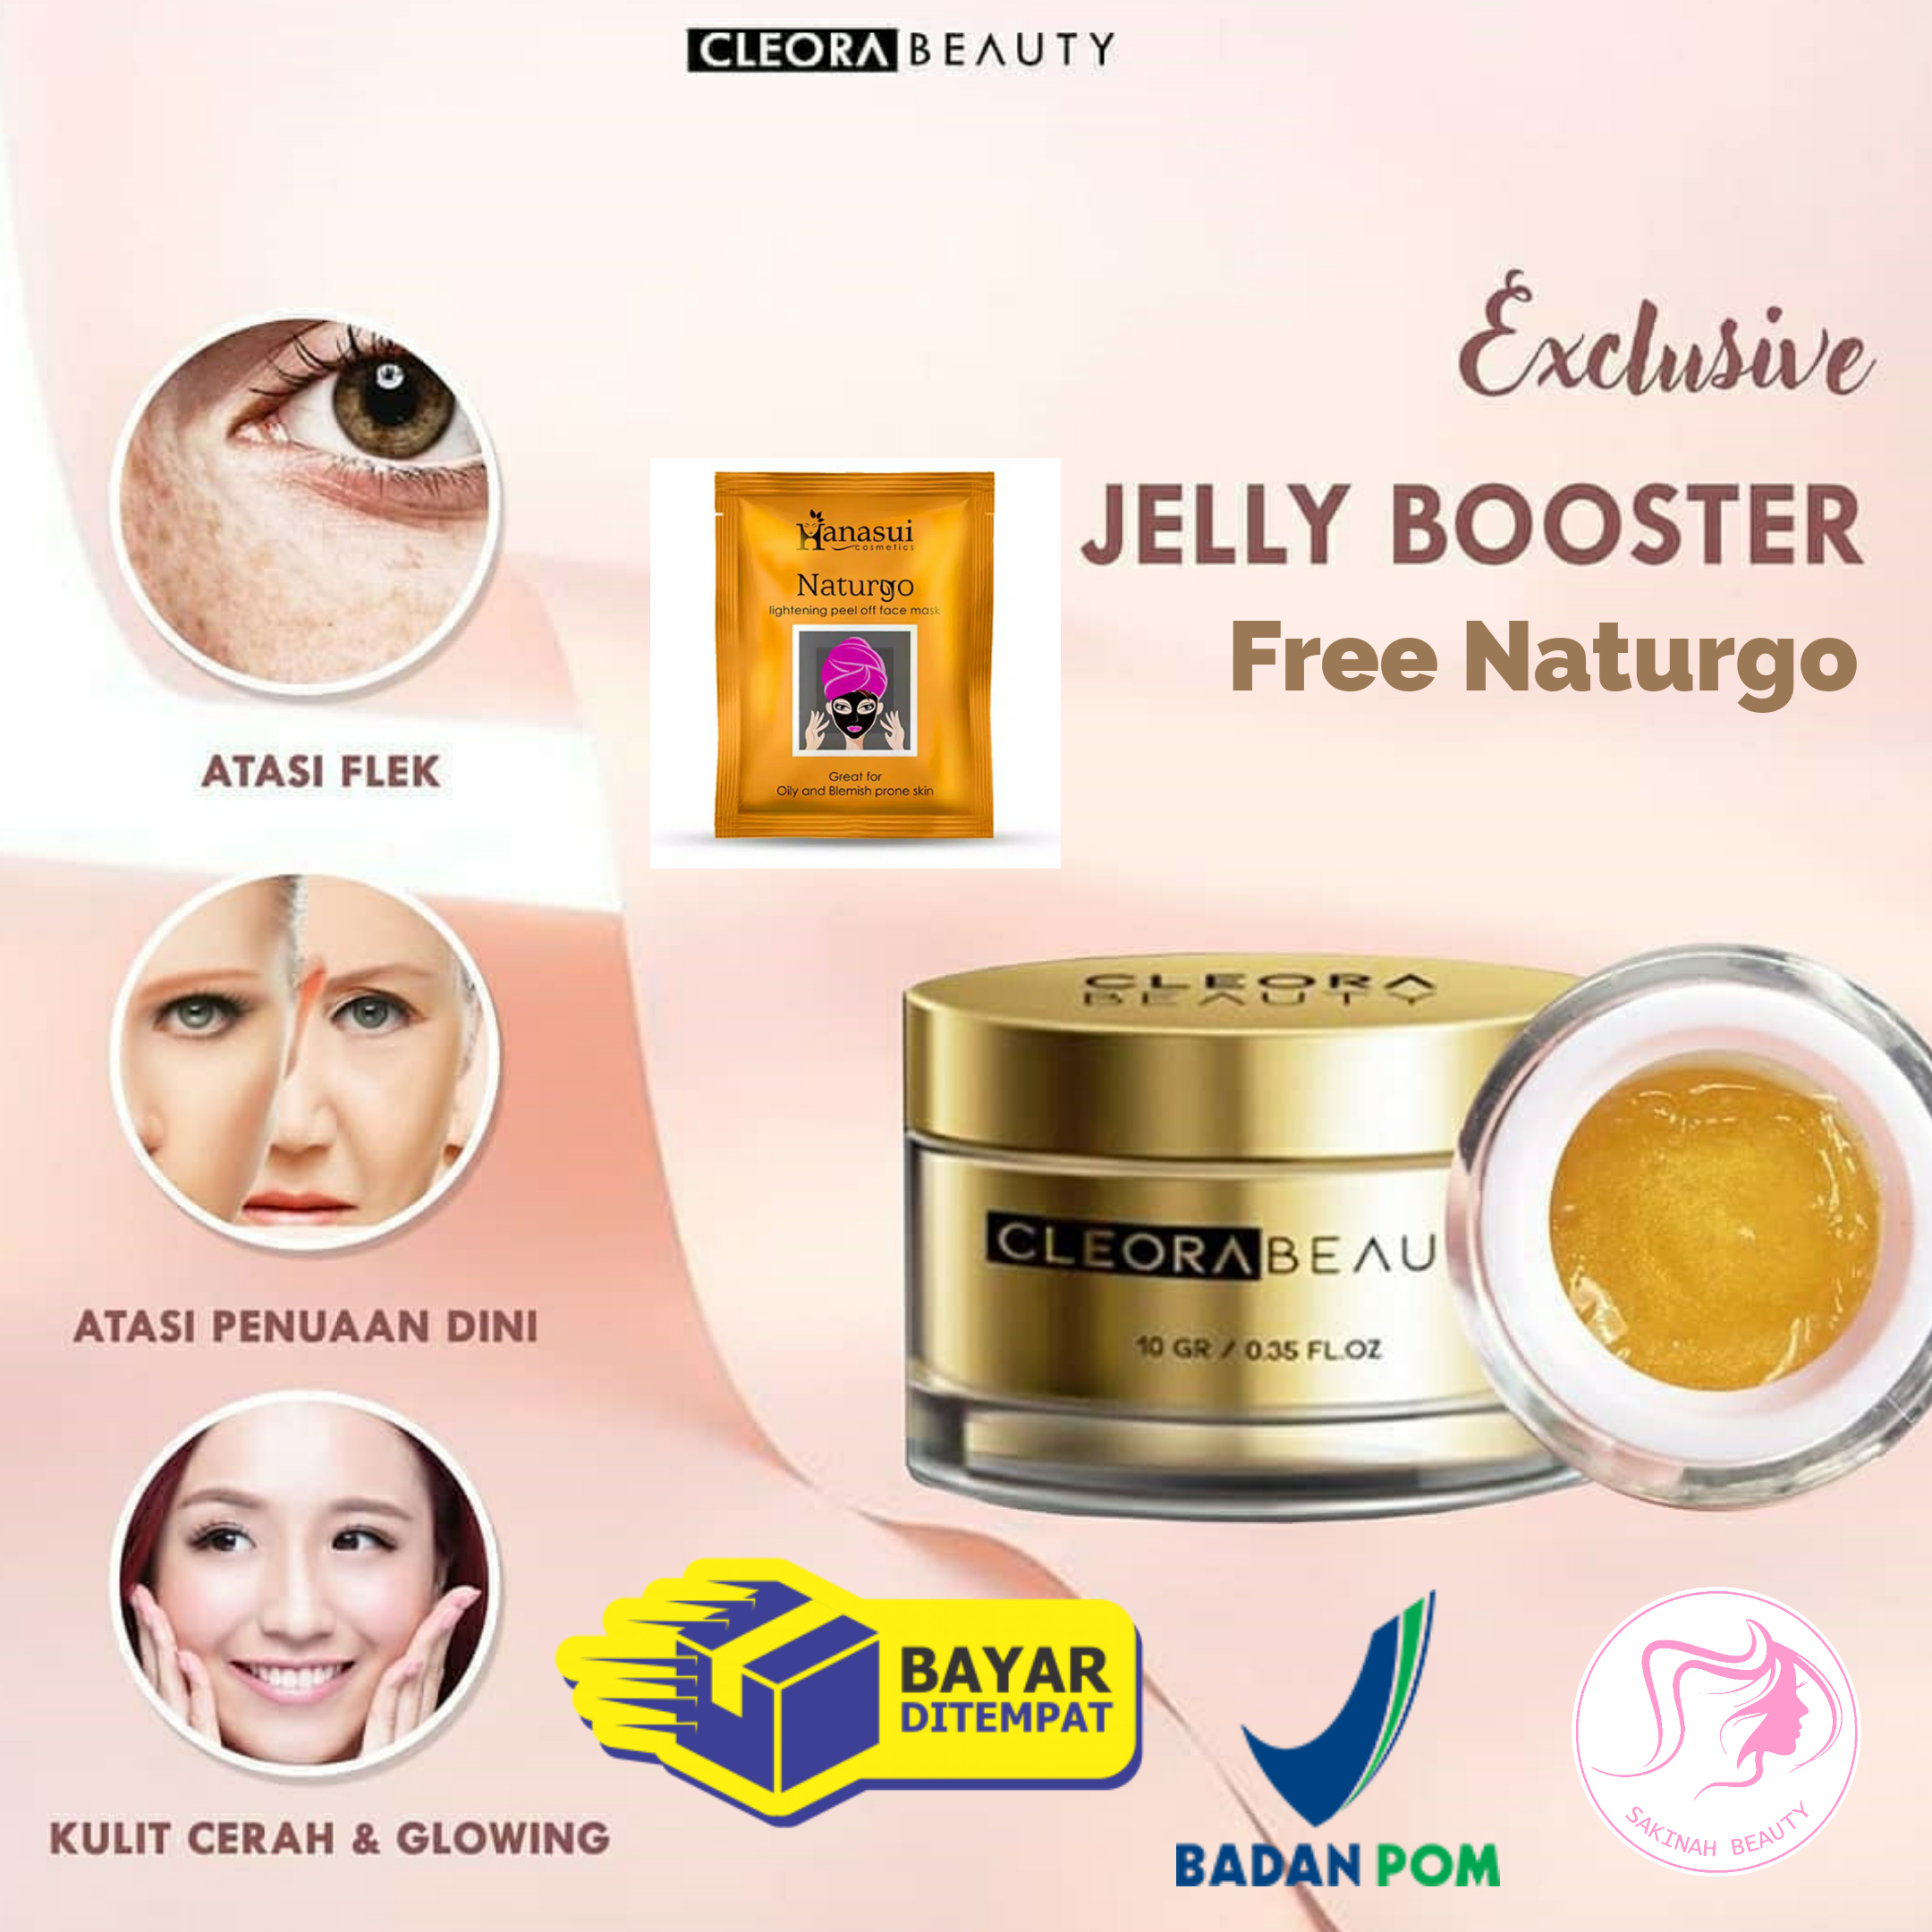 (cod ready) cleora beauty exclusive jelly booster bonus gift